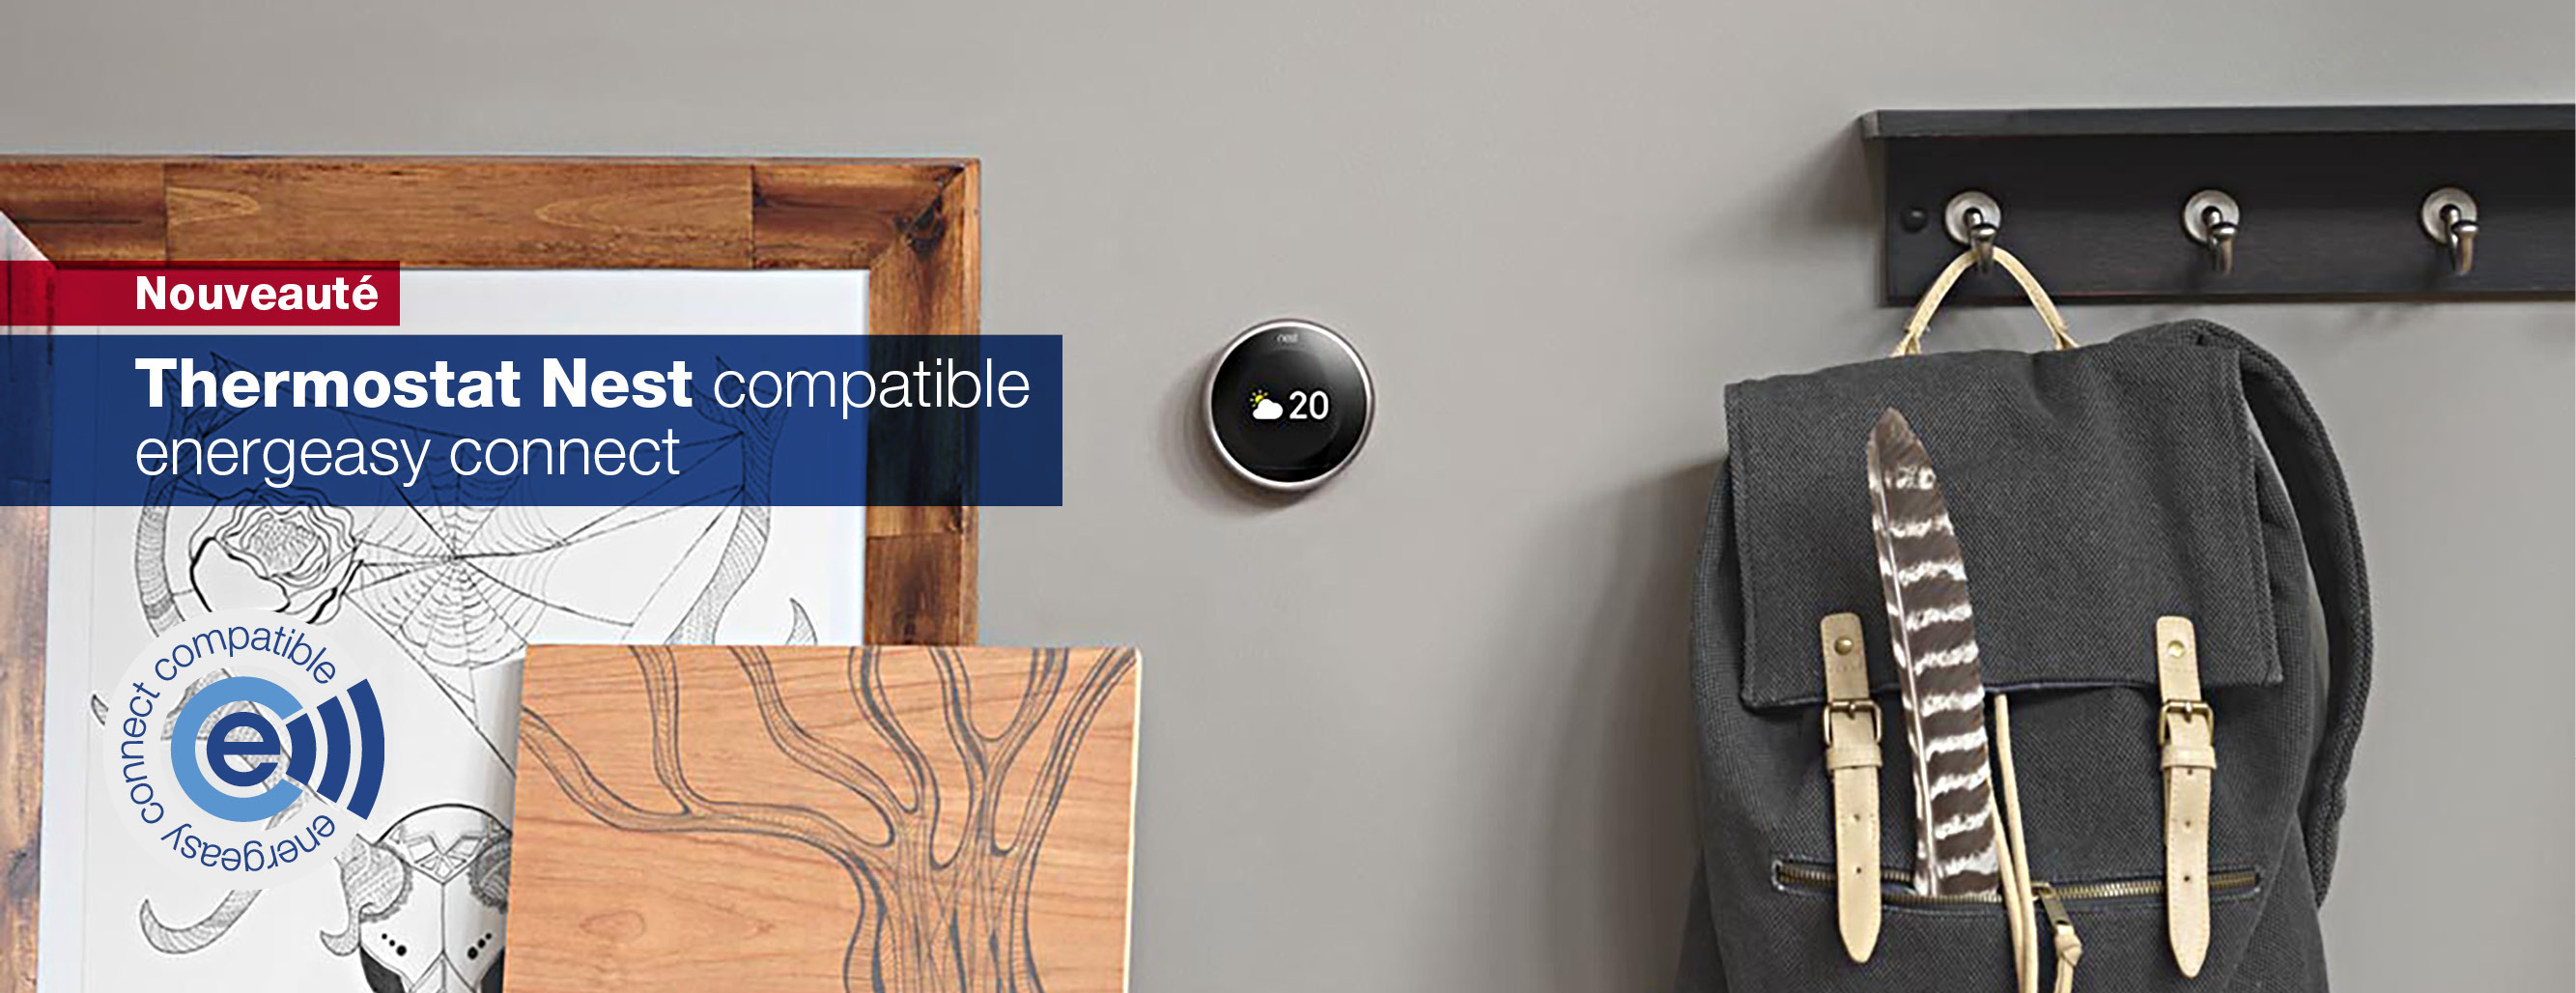 Thermostat Nest compatible